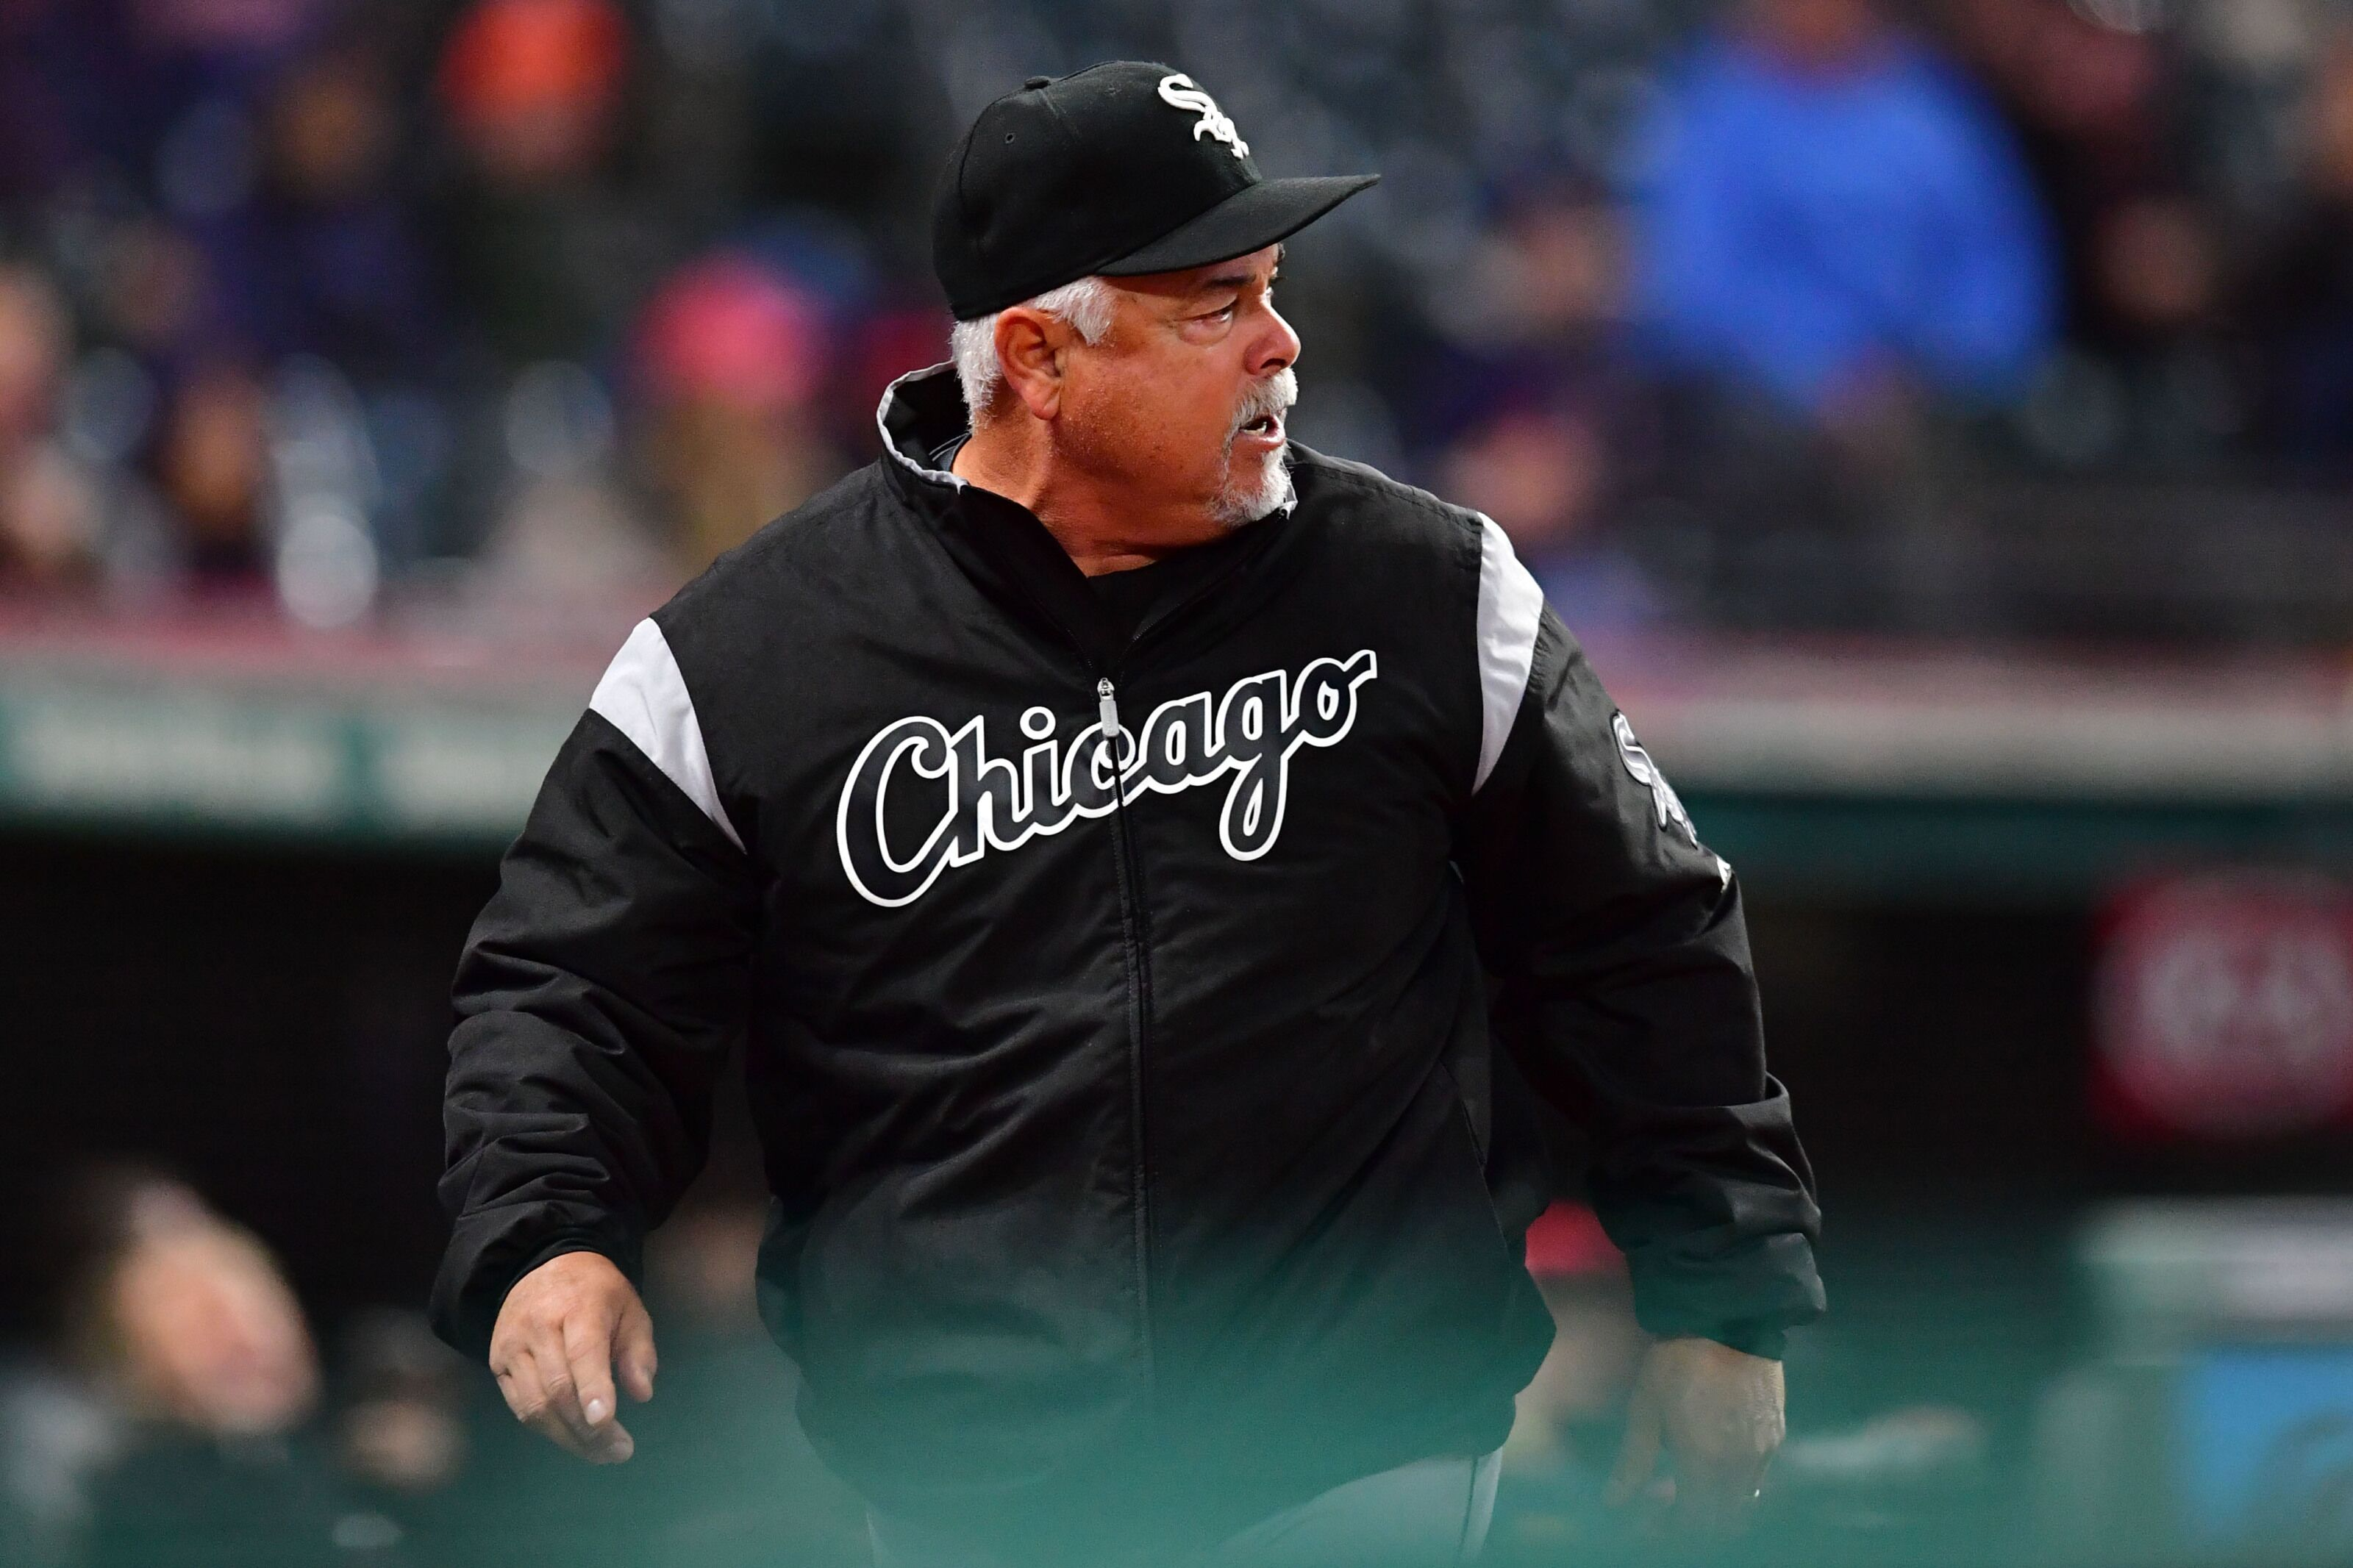 Should the Chicago White Sox have moved on from Rick Renteria?